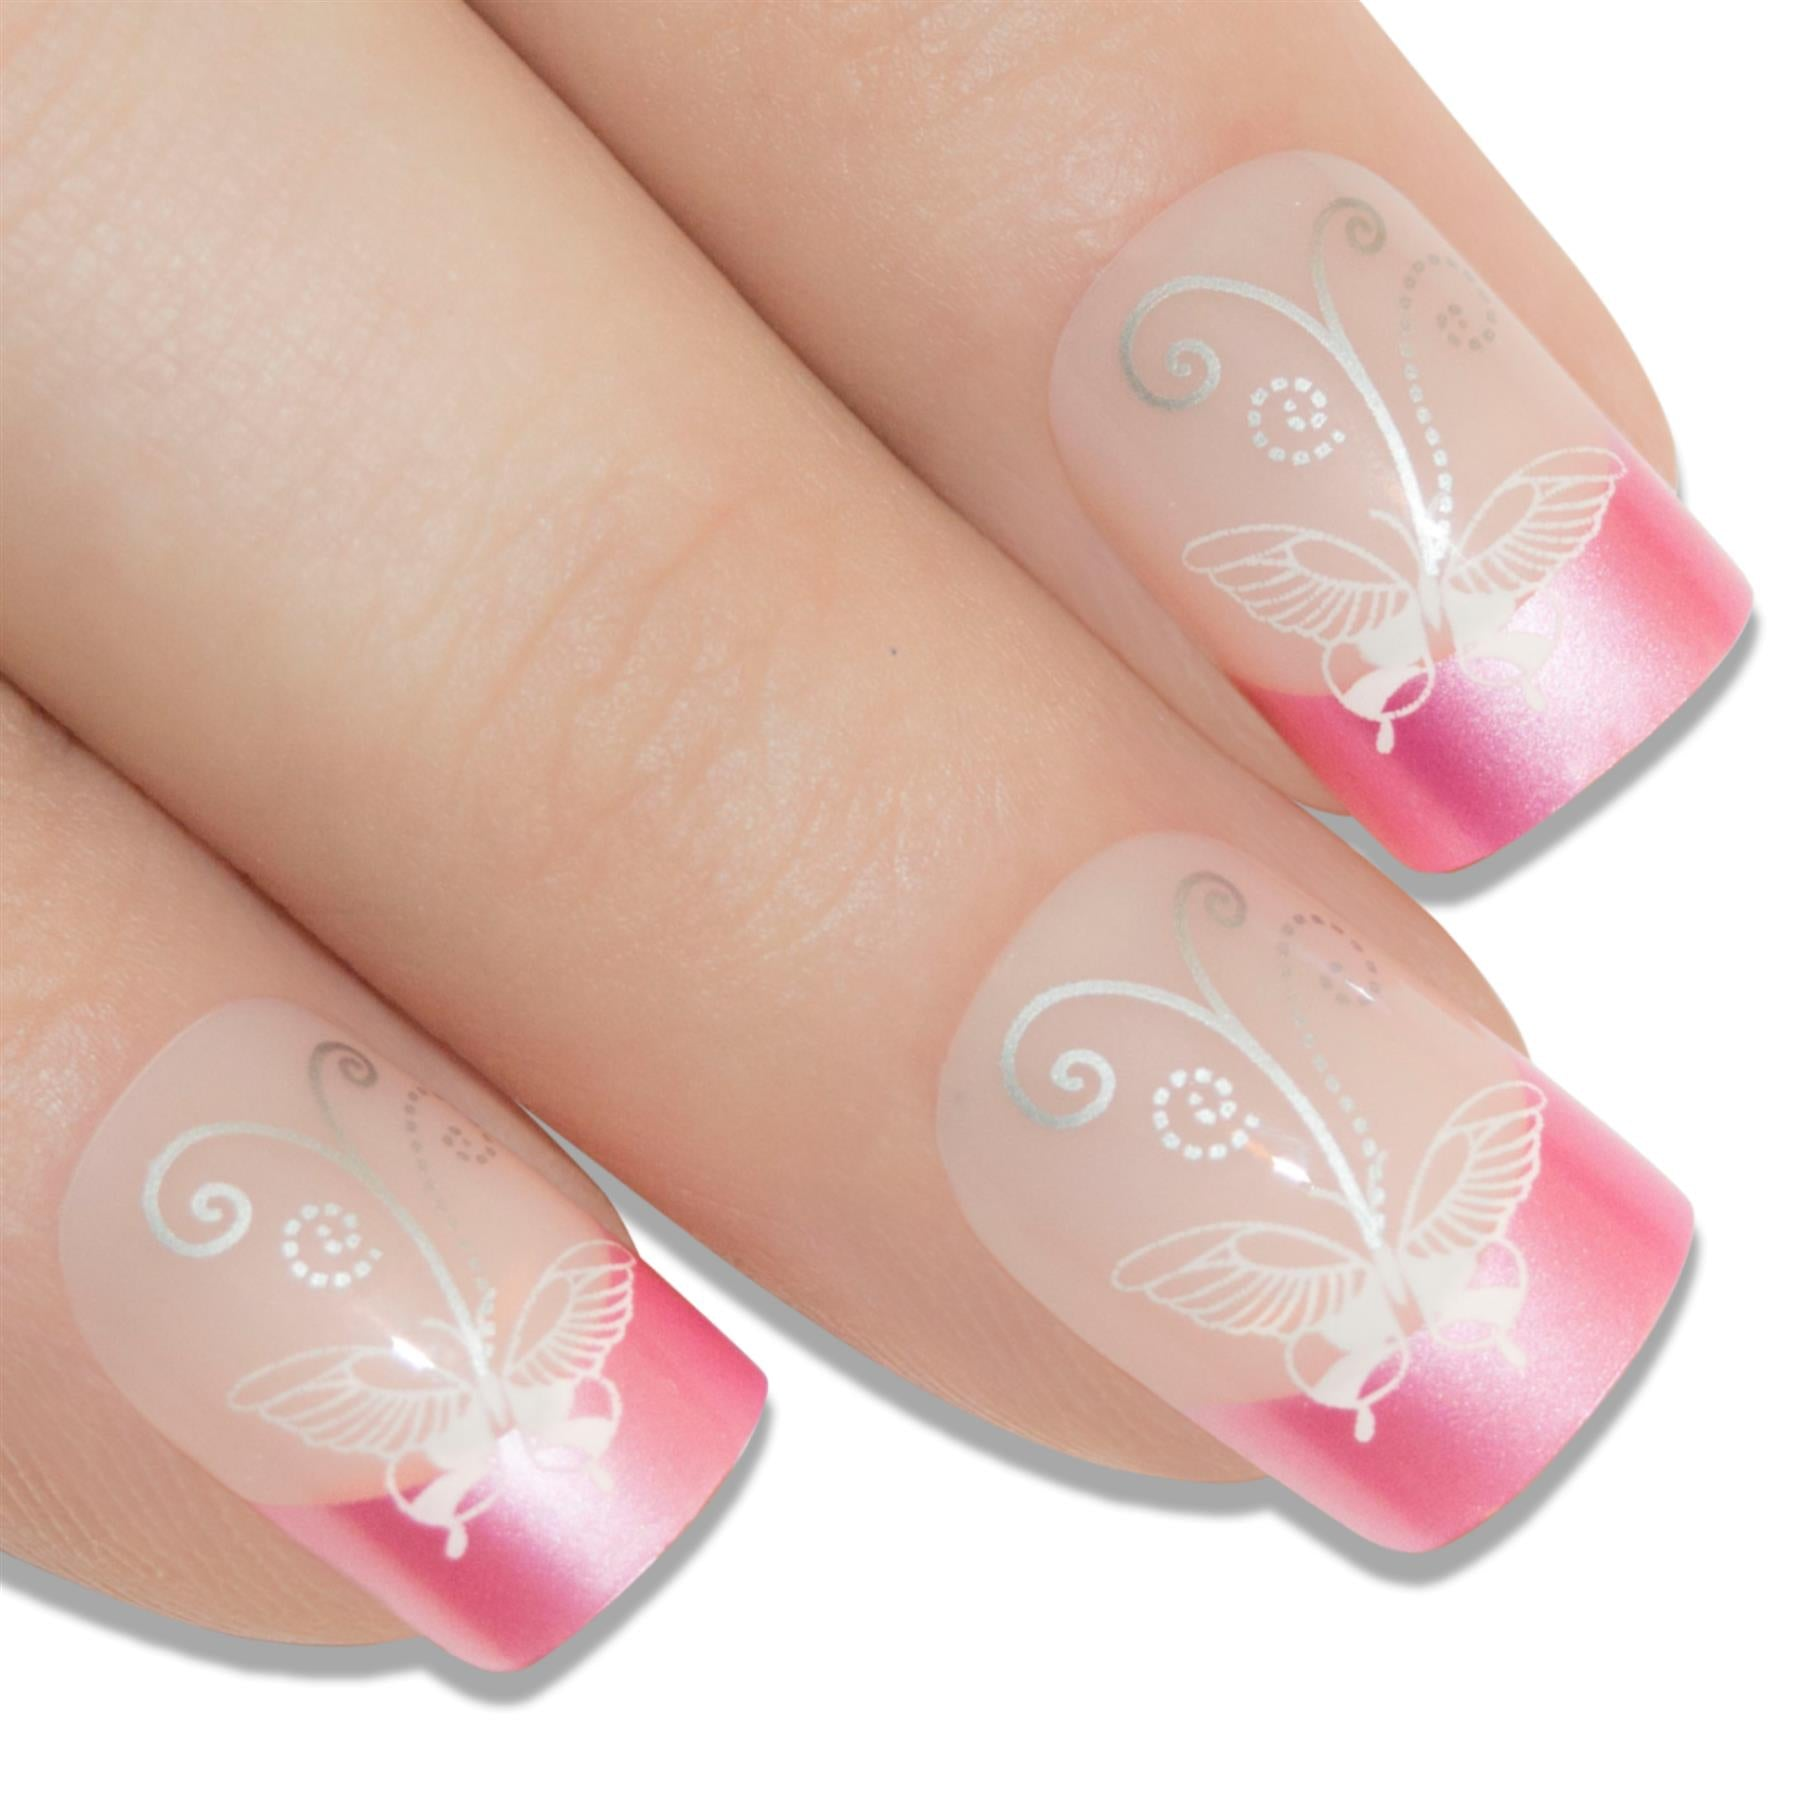 False Nails by Bling Art Pink Flower French Manicure Fake Medium Tips with Glue, Health & Beauty by Bling Art